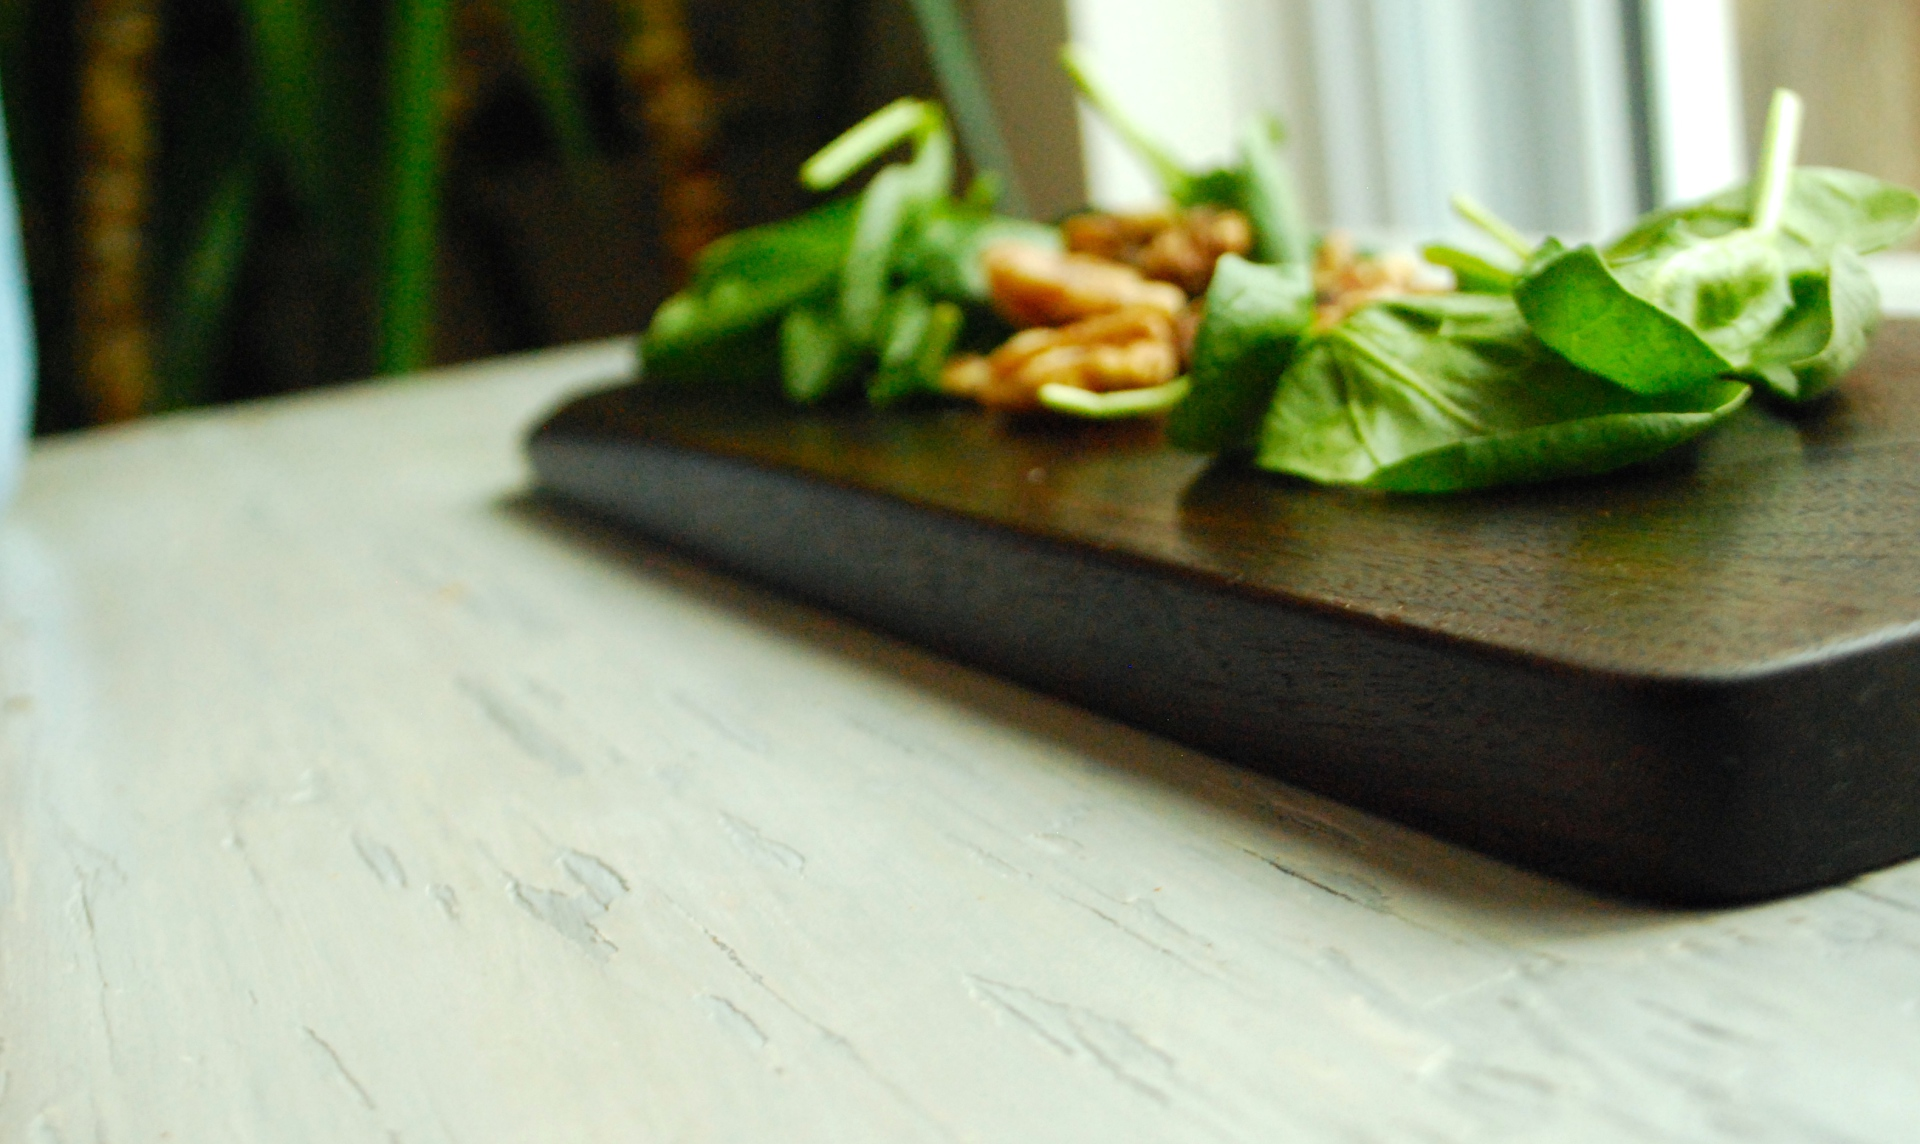 Walnut Serving/Cutting Board